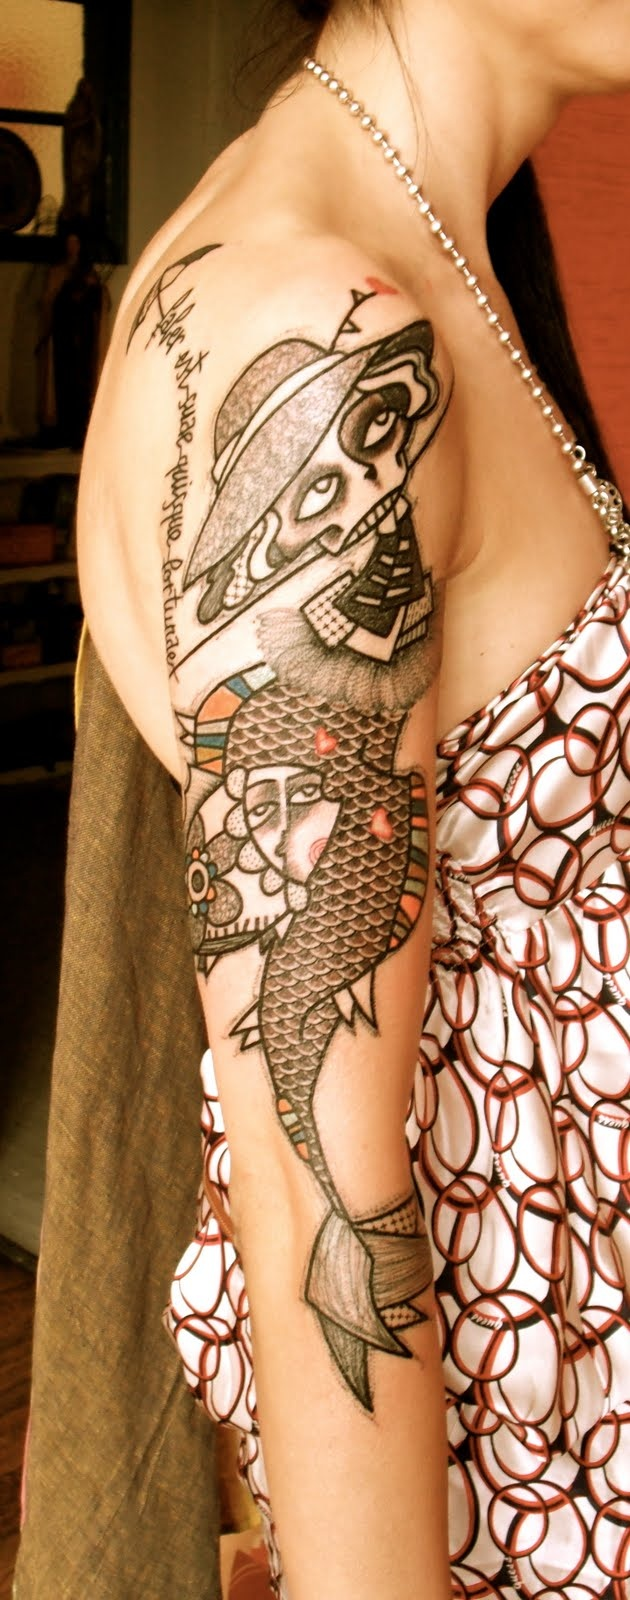 633 best Tattoos images on Pinterest | Ideas, Beautiful tattoos ...